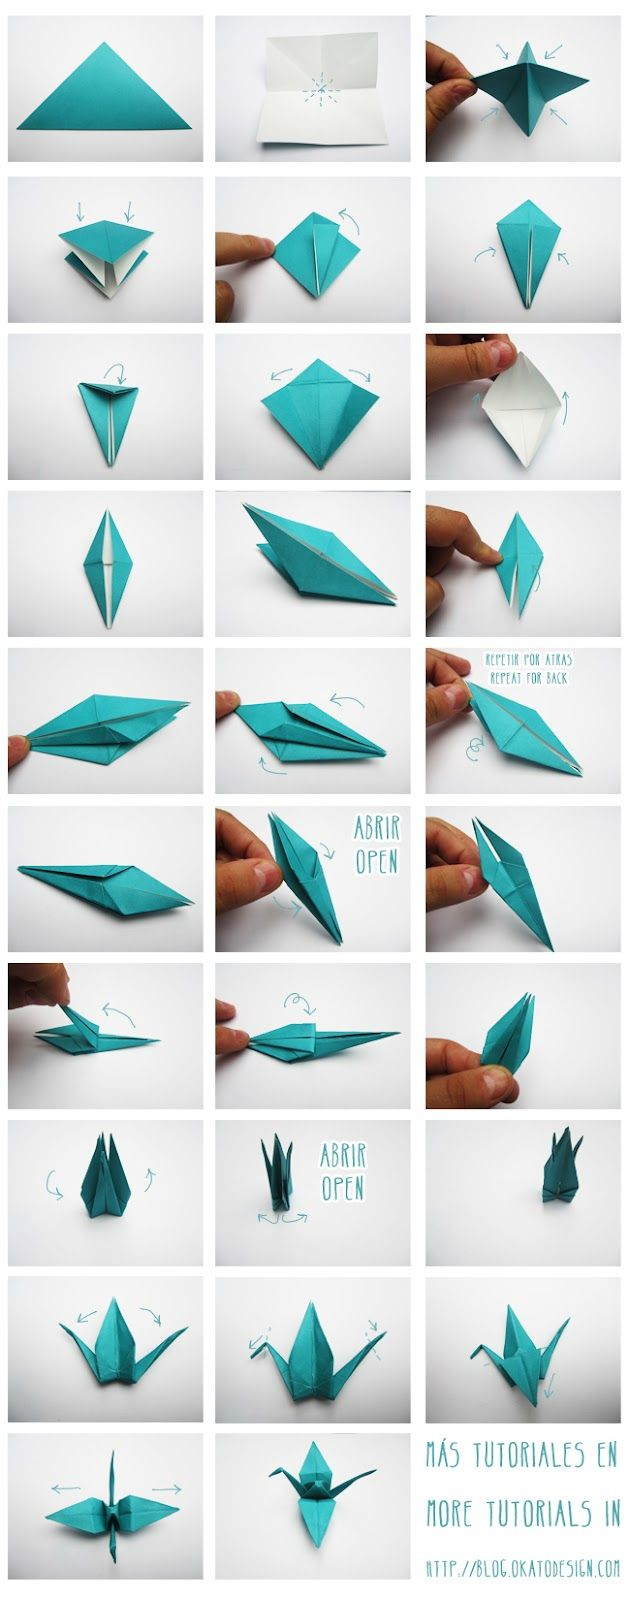 DIY Crafts: Grullas de Origami